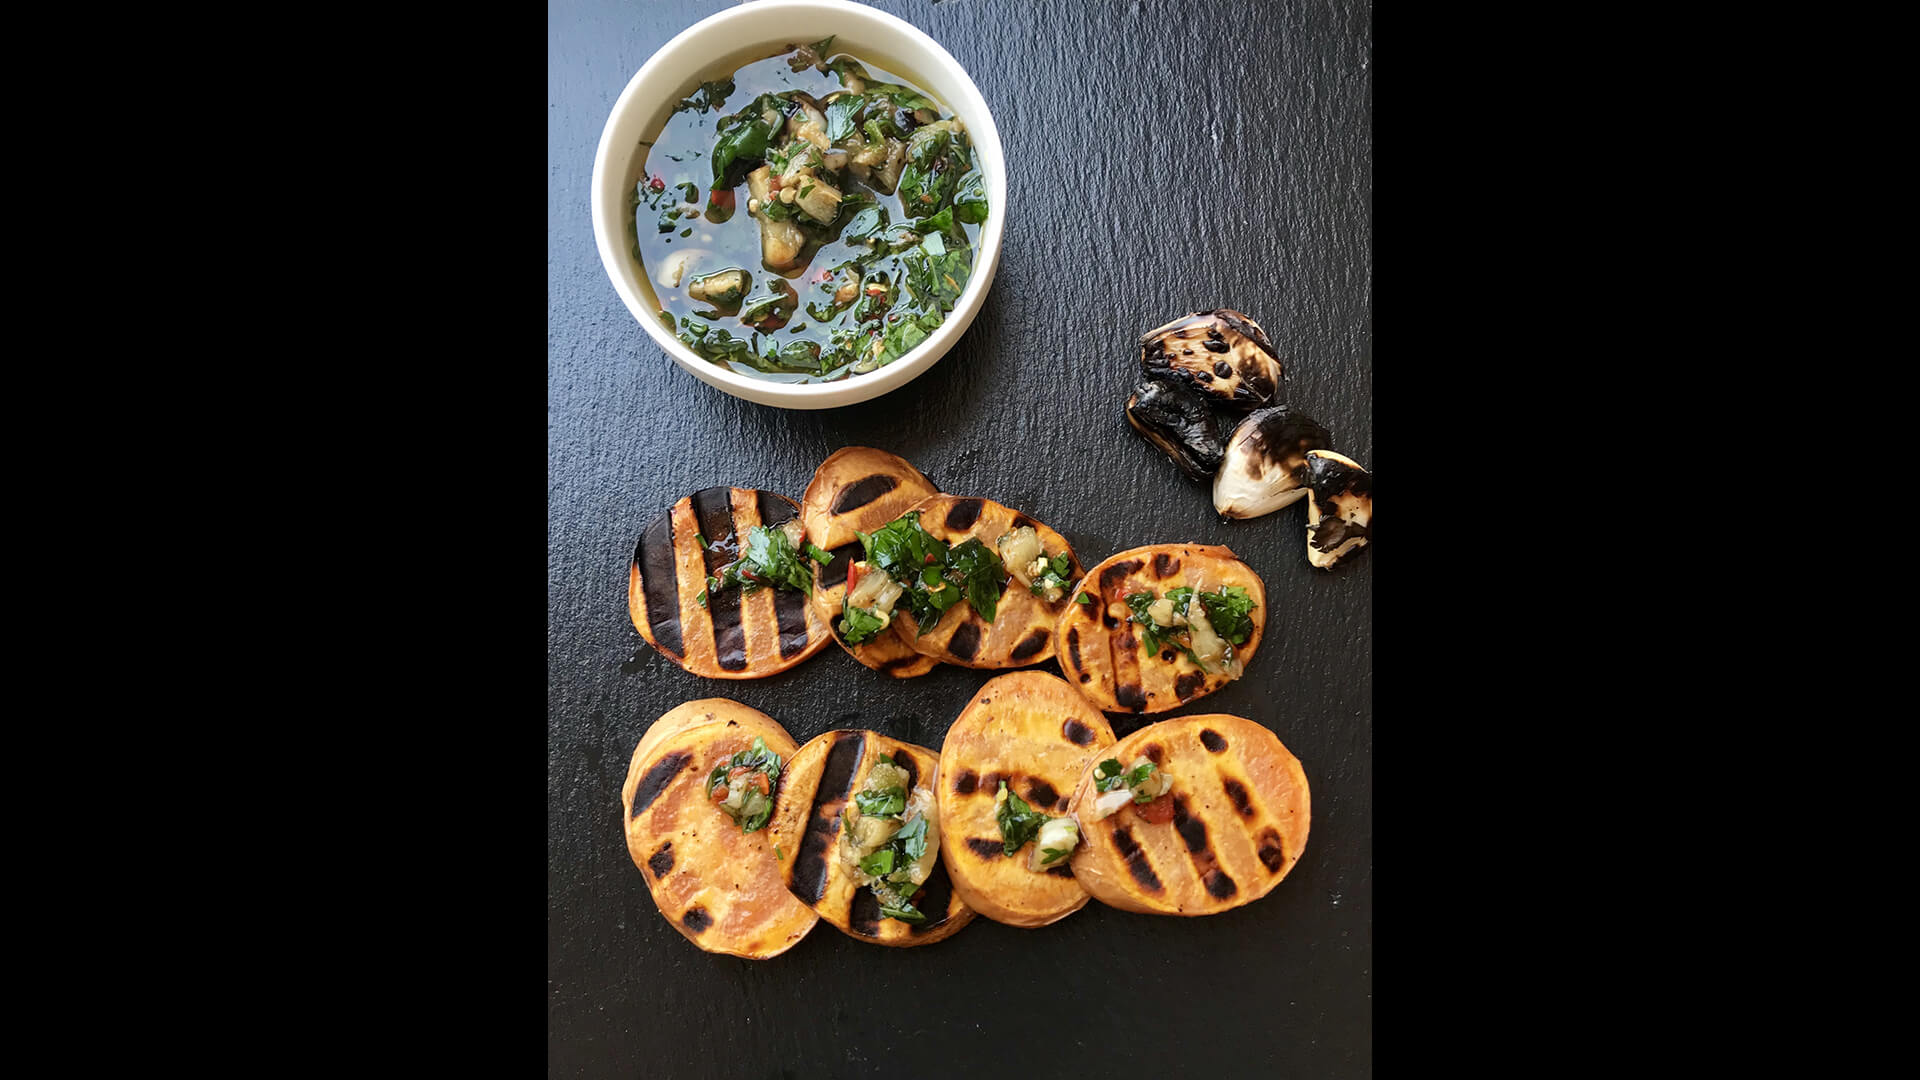 Roasted Sweet Potatoes with Parsley, mint and roasted garlic Dip